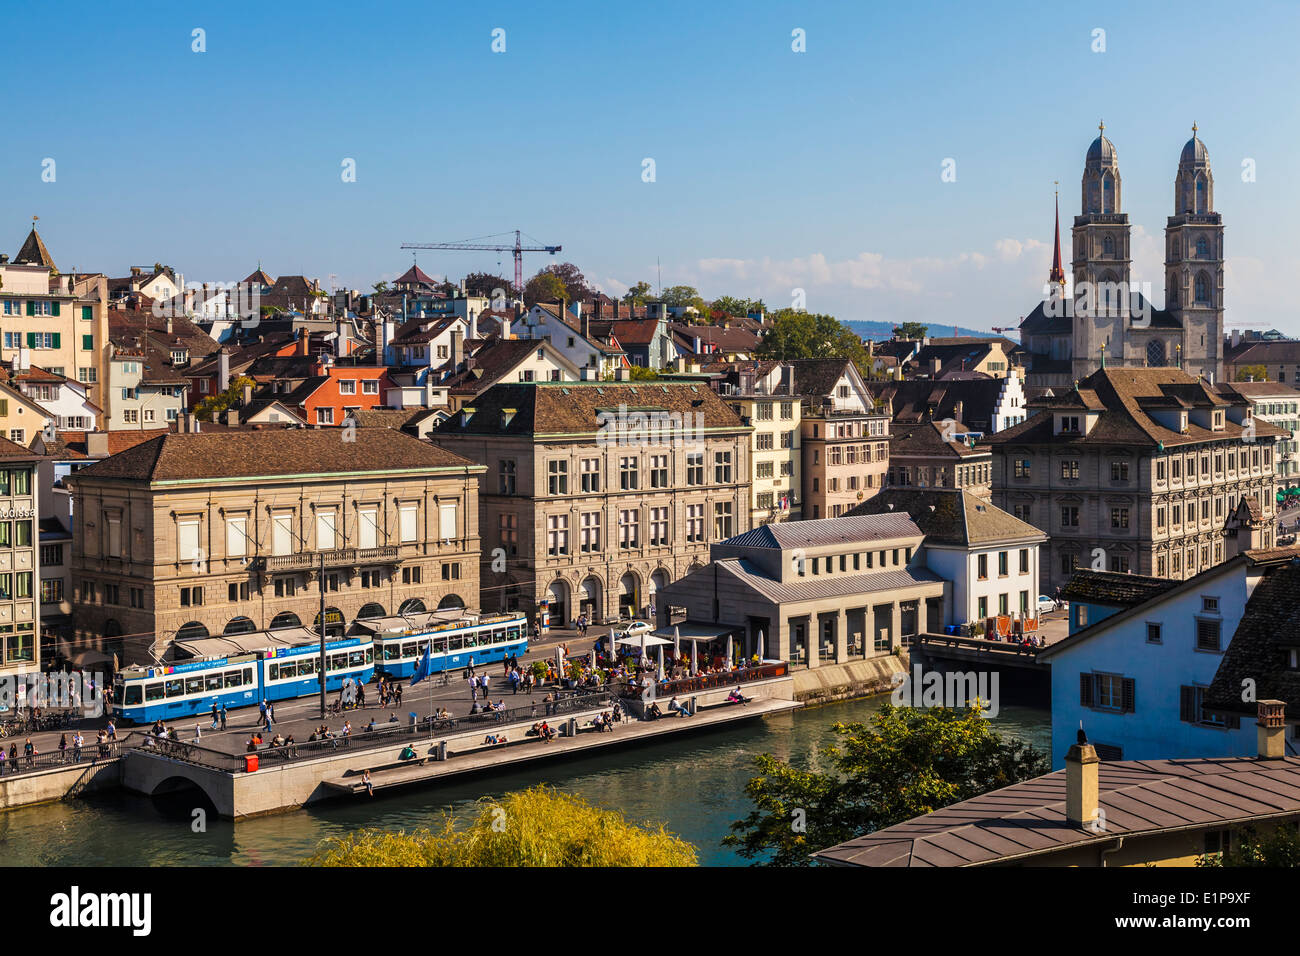 Panorama of Zurich with the Limmat River and Grossmunster Church, Switzerland. Taken on a beautiful sunny day. - Stock Image